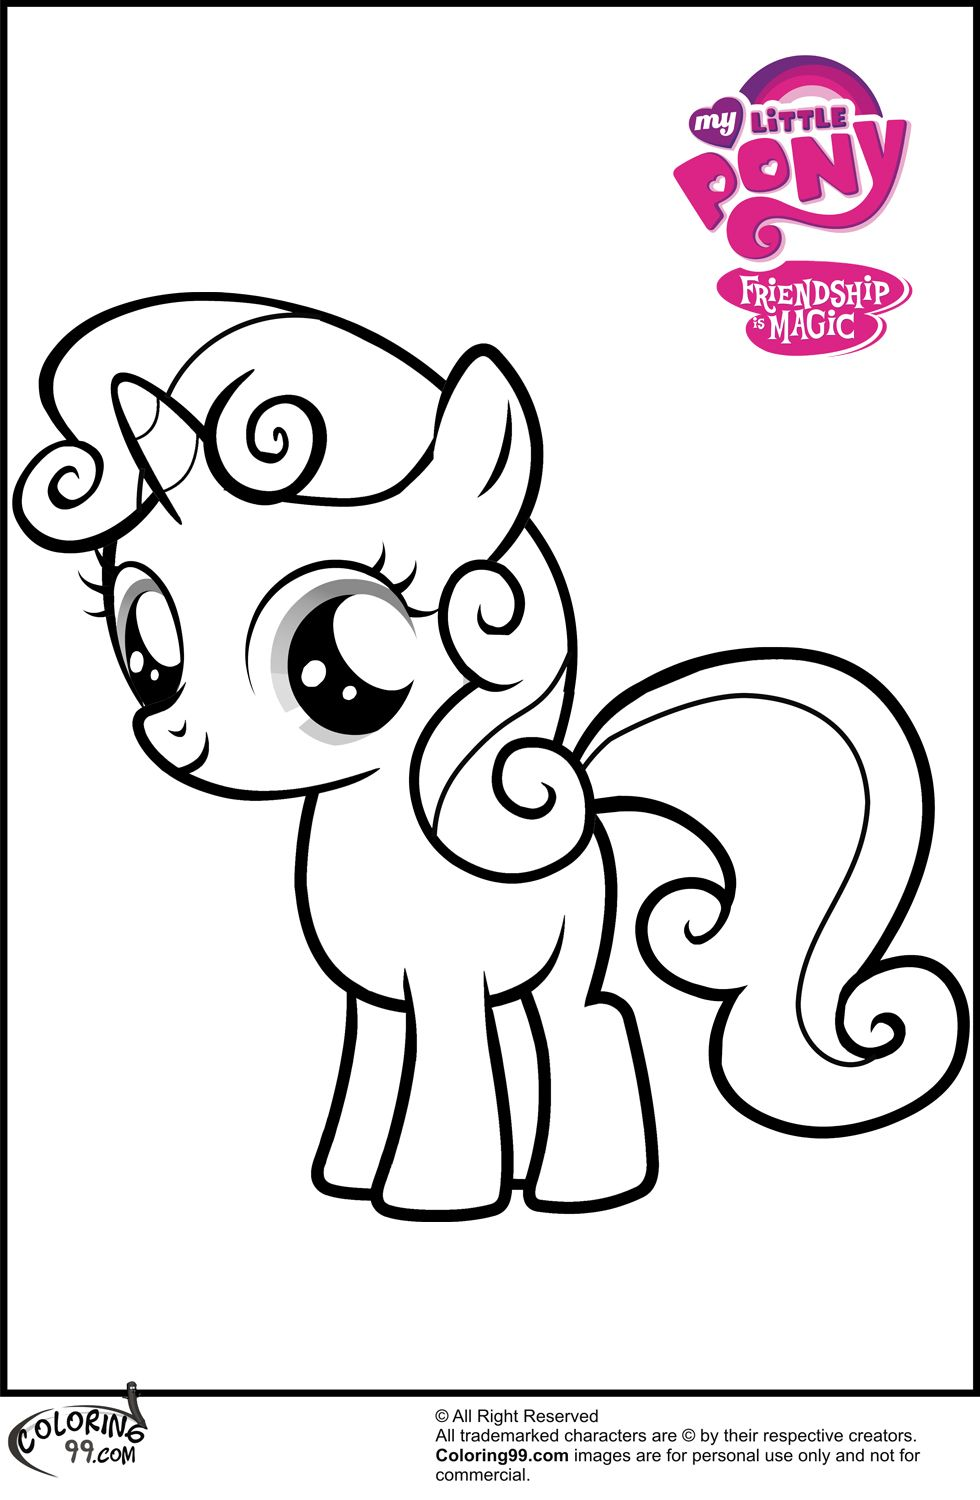 My little pony friendship is magic coloring pages sweetie belle - Mlp Print Pages My Little Pony Sweetie Belle Coloring Pages